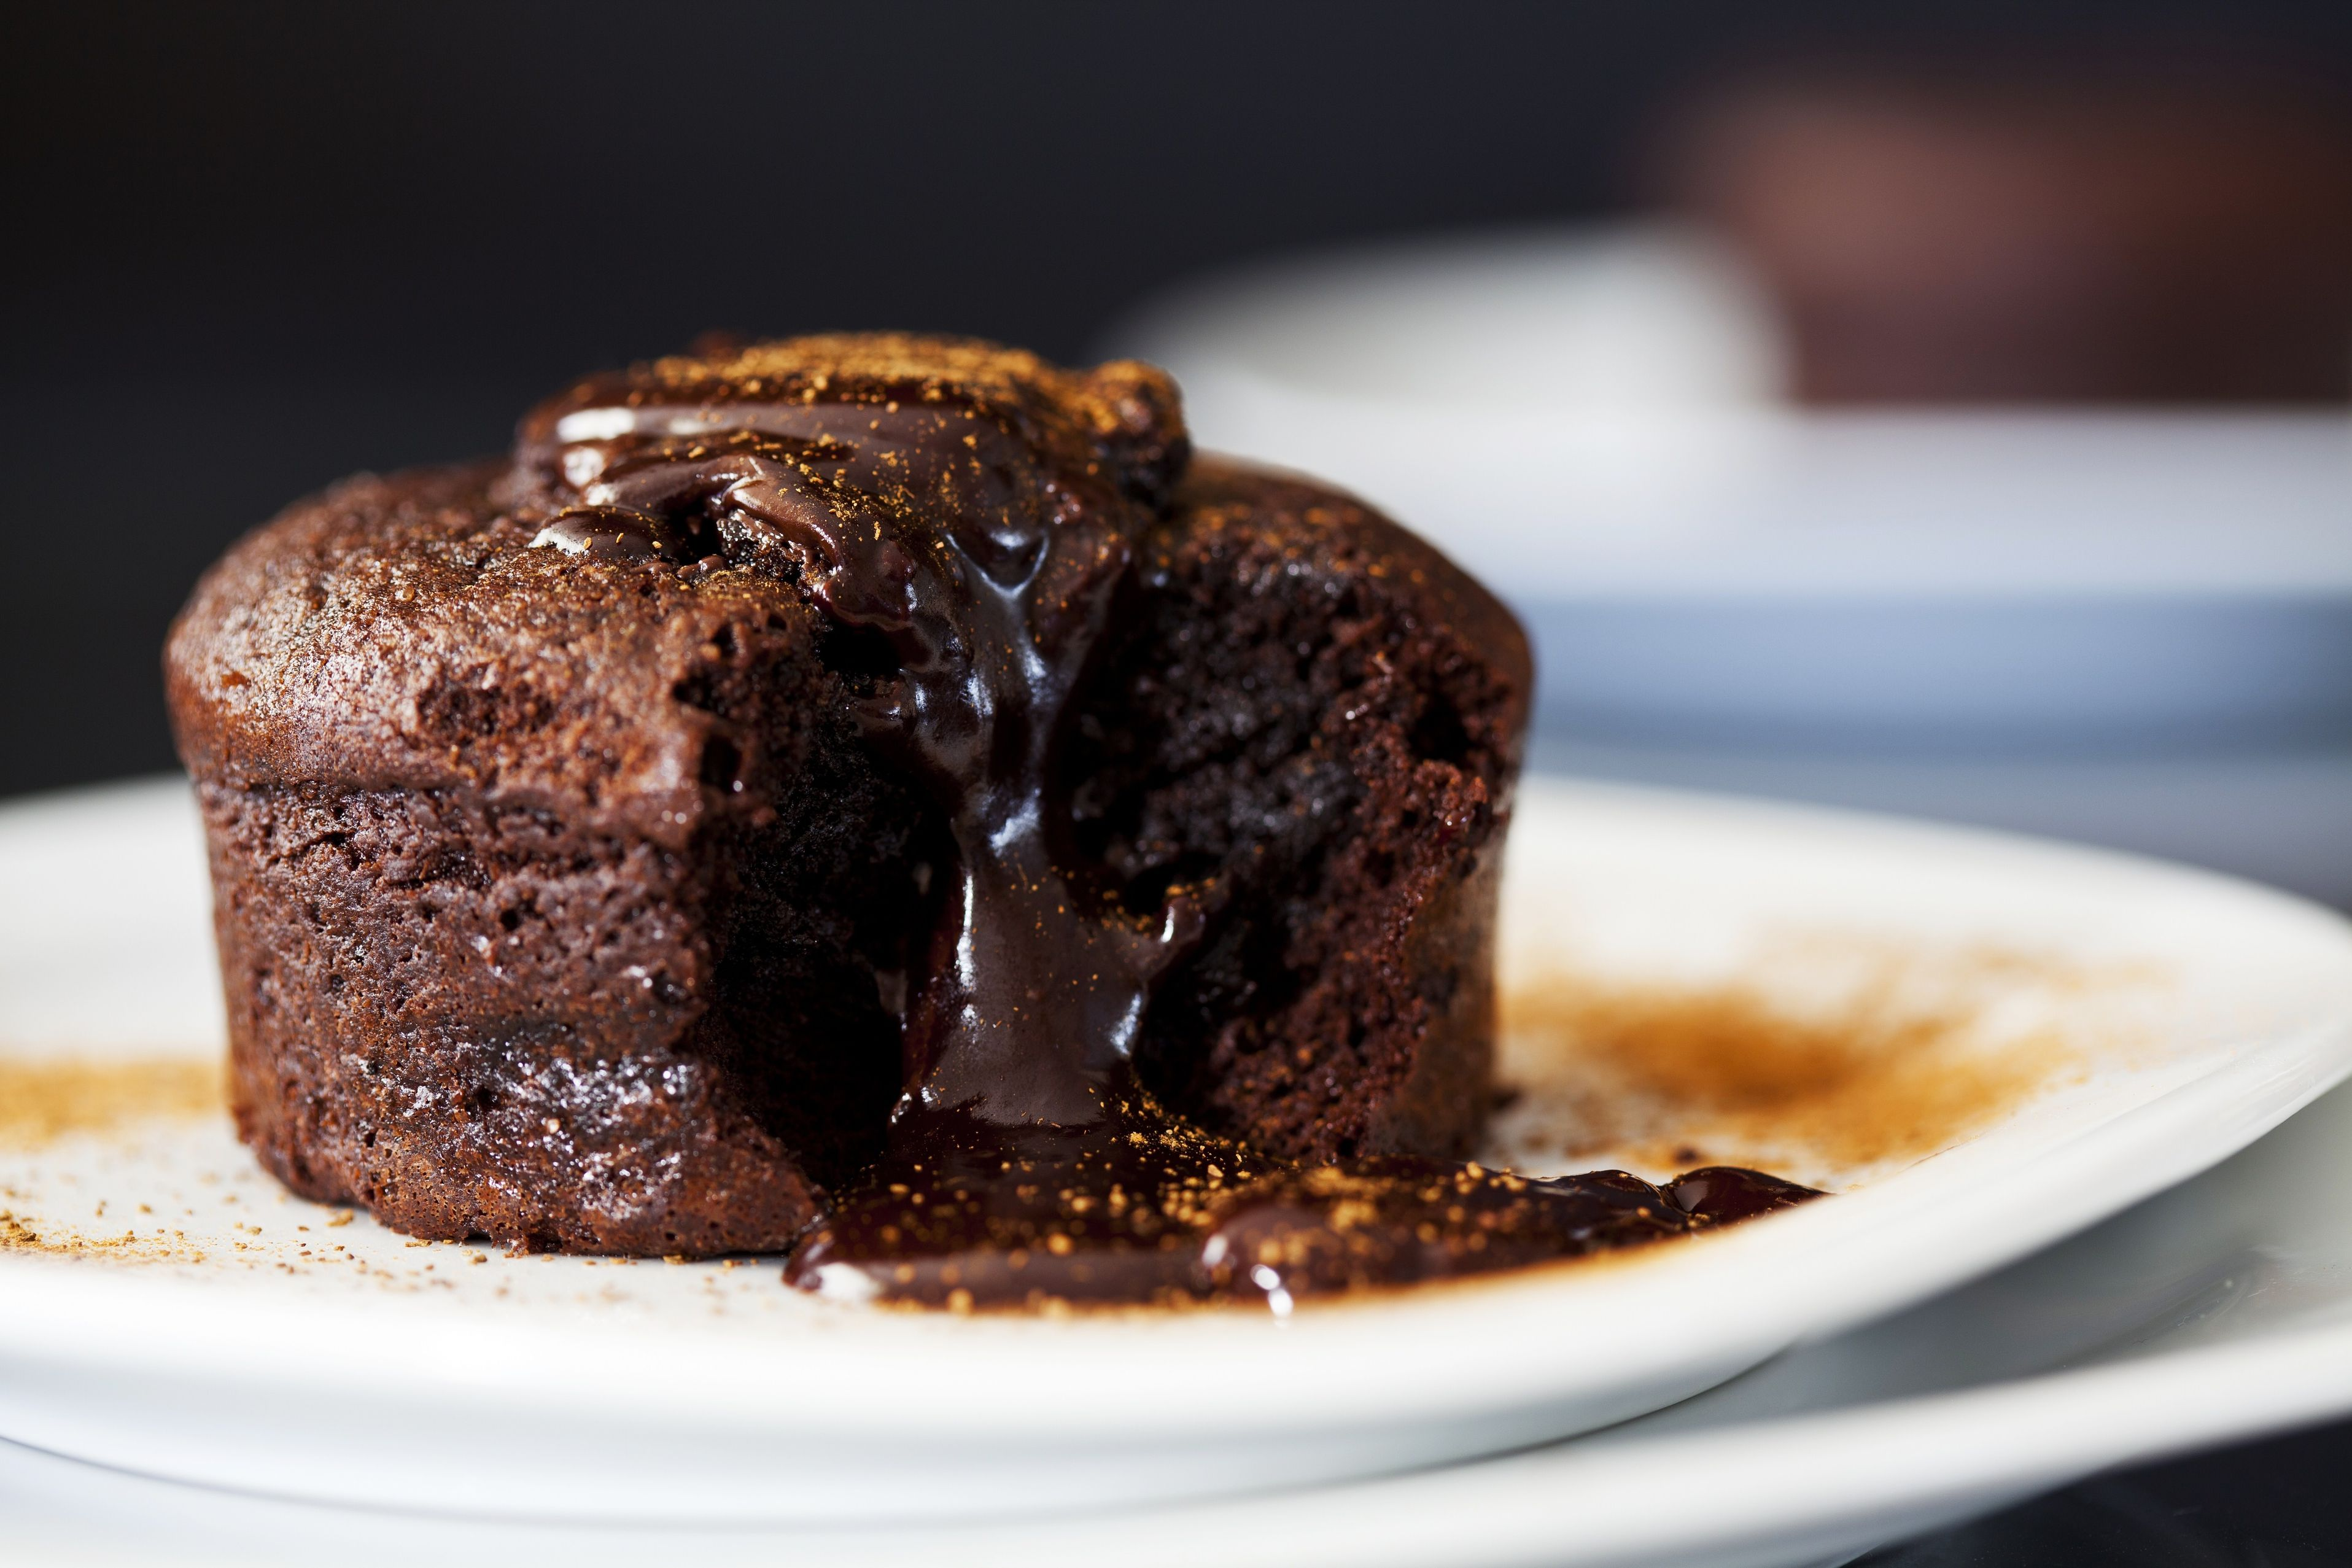 chocolate-souffle.jpg?1391721934